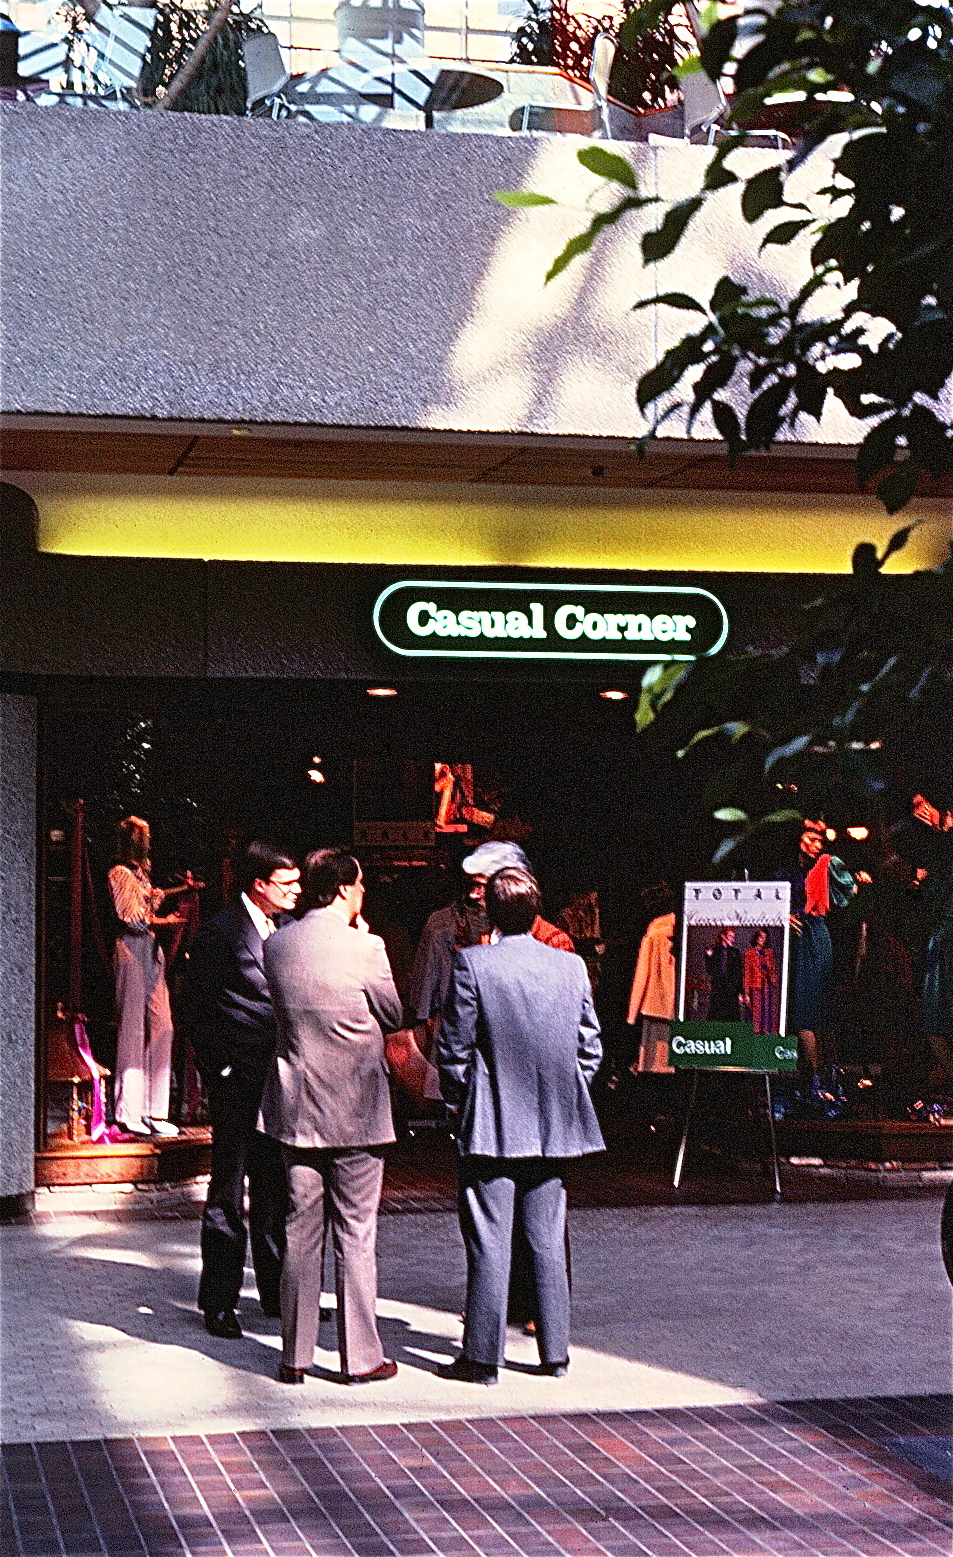 Canopy over an entrance featuring a retail sign standard saying Casual Corner.